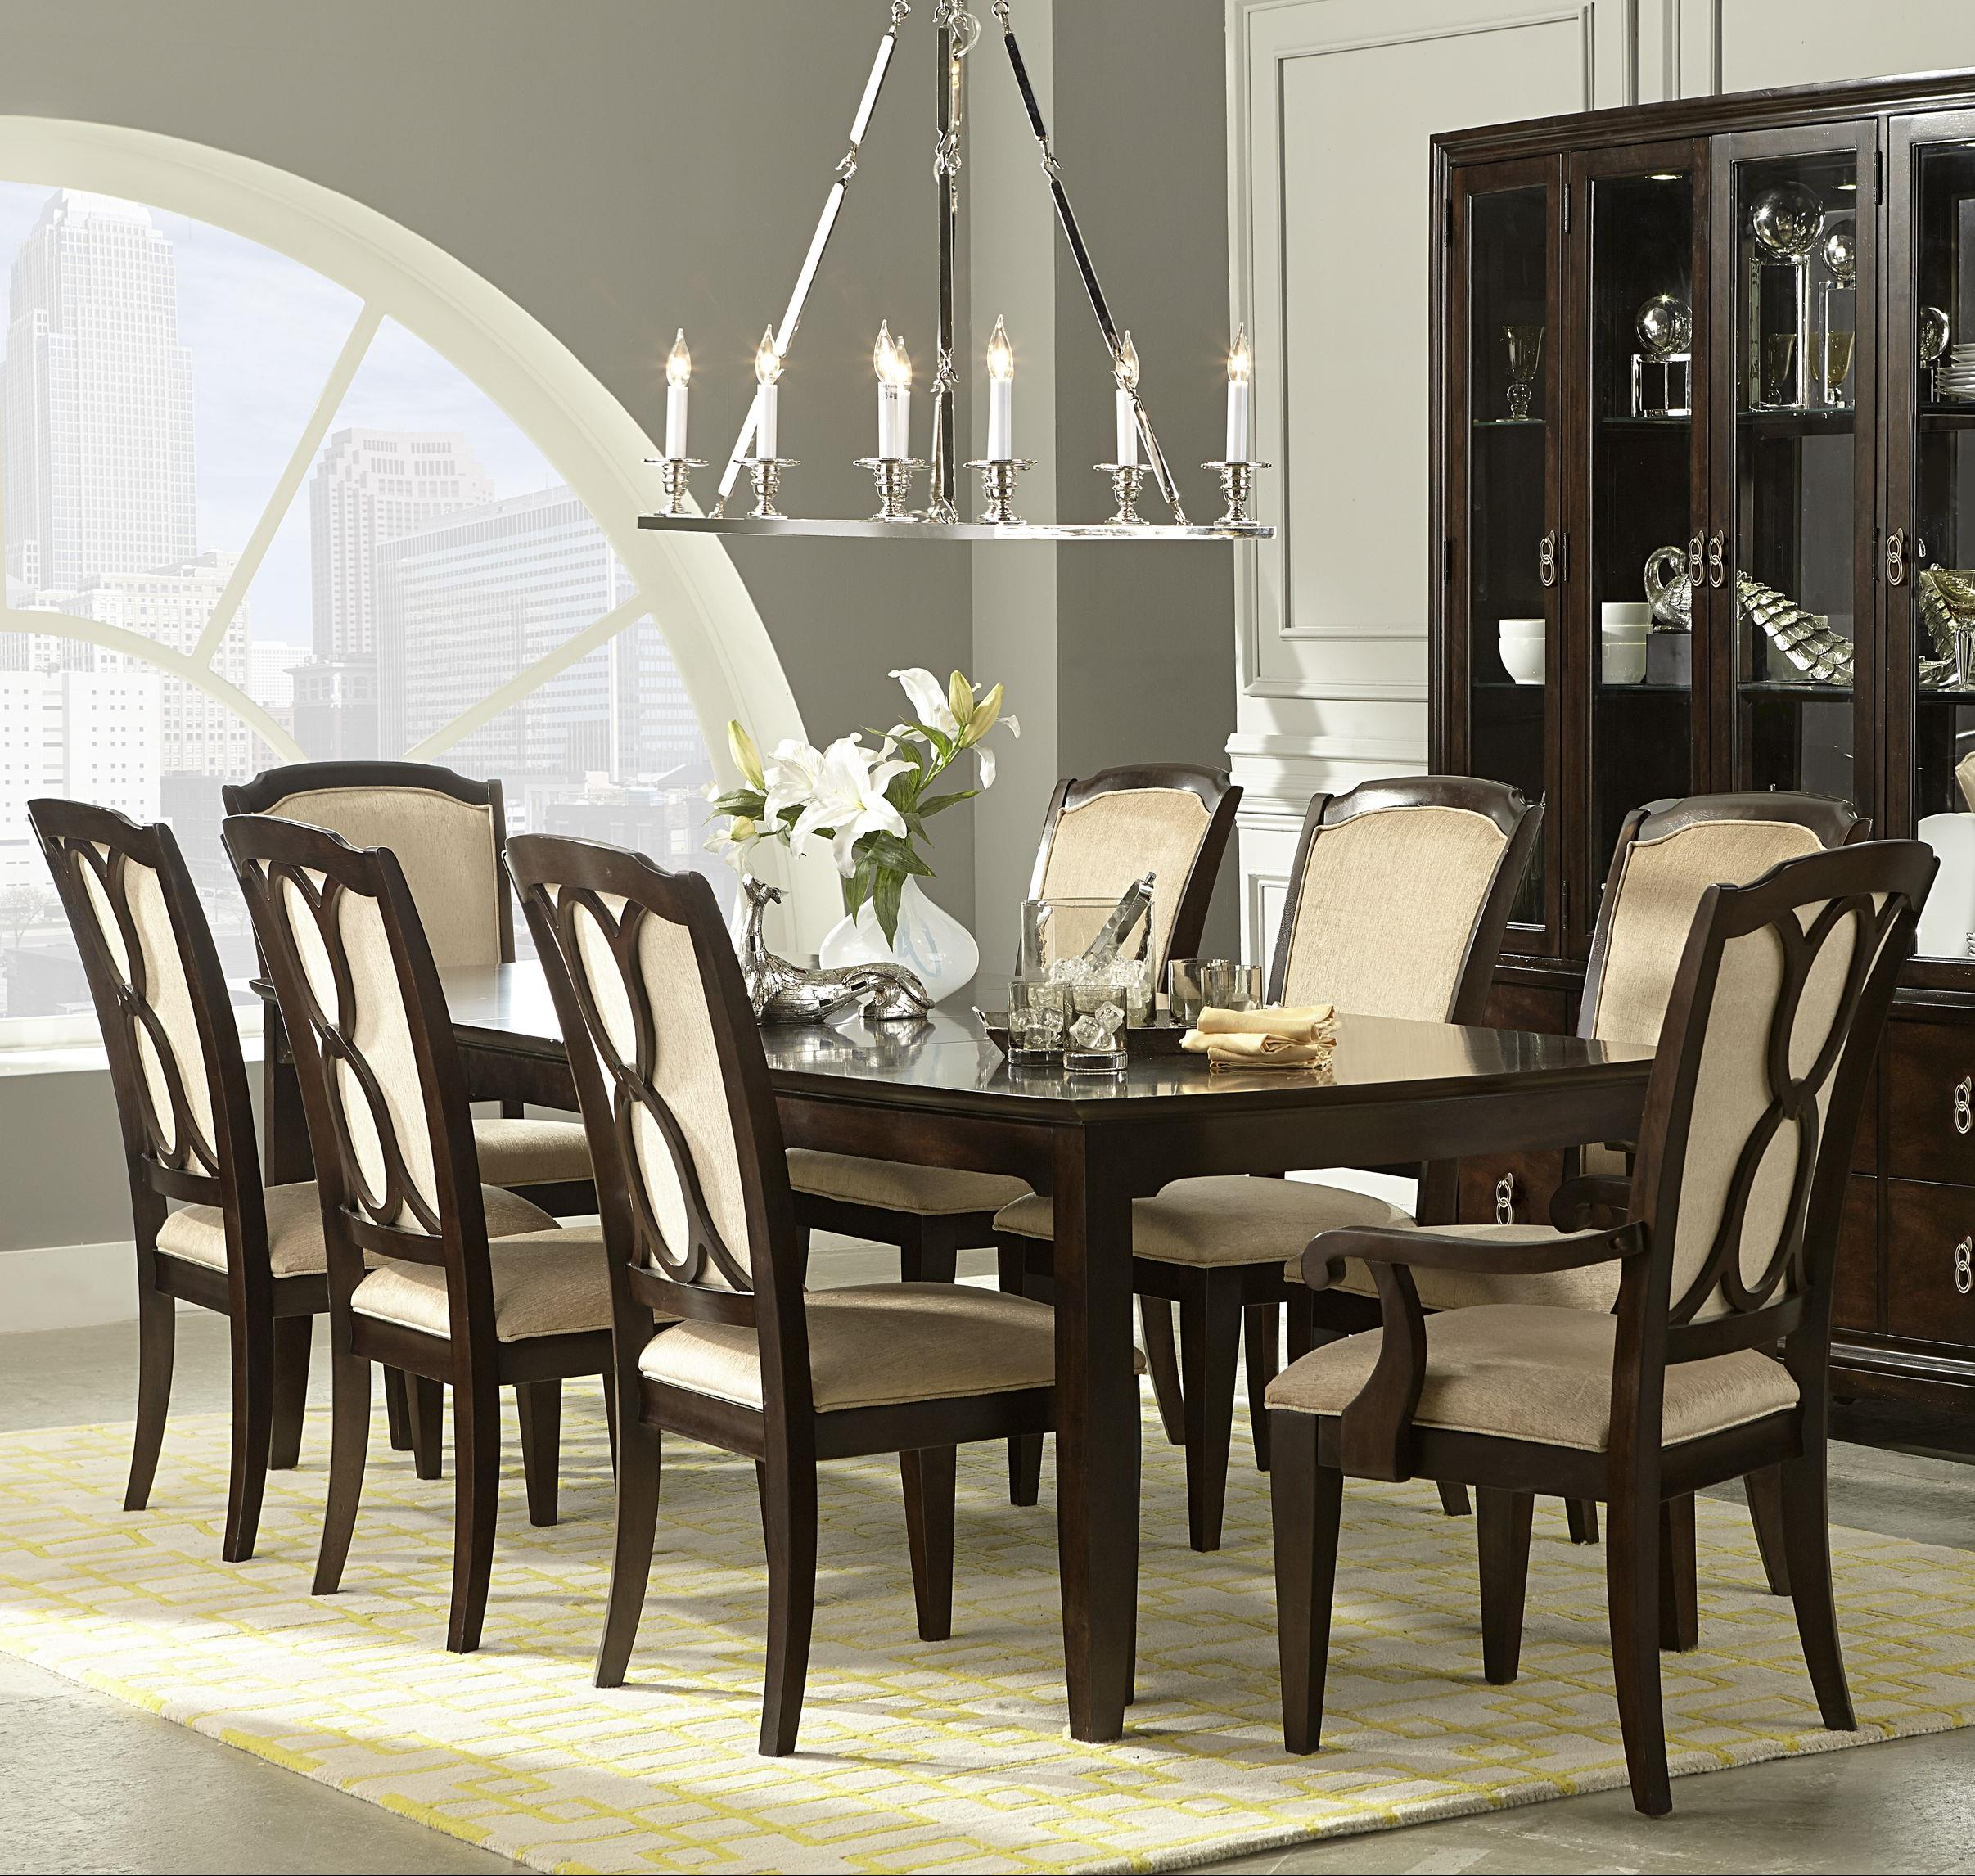 Legacy Classic Sophia 9 Piece Table and Chair Set - Item Number: 4450-222+2x241 KD+6x240 KD